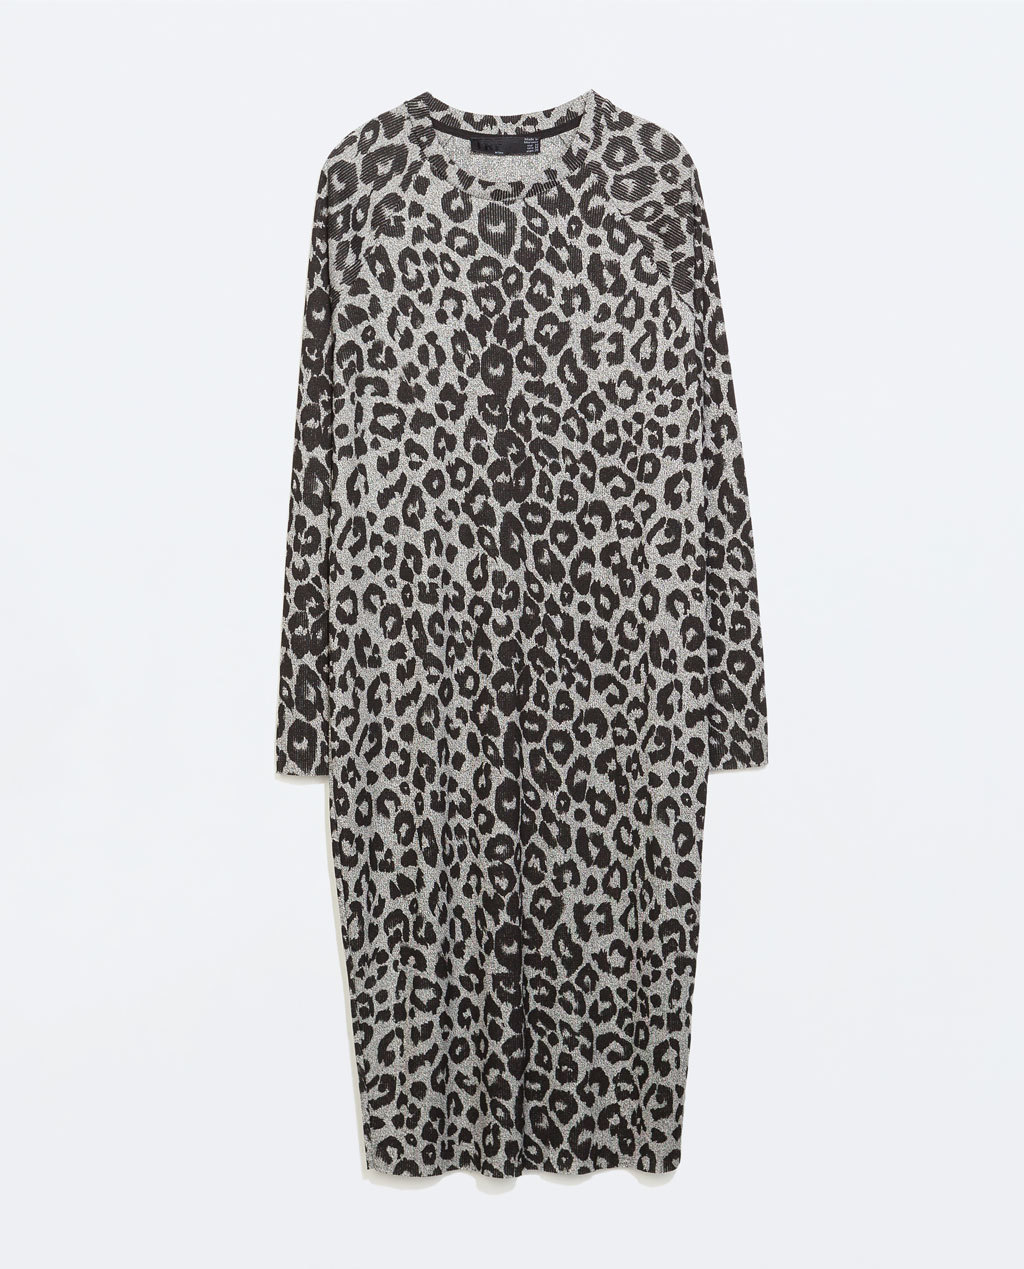 Printed Velour Dress - style: jumper dress; neckline: round neck; predominant colour: mid grey; secondary colour: black; occasions: casual, evening; length: on the knee; fit: body skimming; fibres: viscose/rayon - stretch; sleeve length: long sleeve; sleeve style: standard; pattern type: knitted - other; pattern size: standard; pattern: animal print; texture group: velvet/fabrics with pile; season: a/w 2014